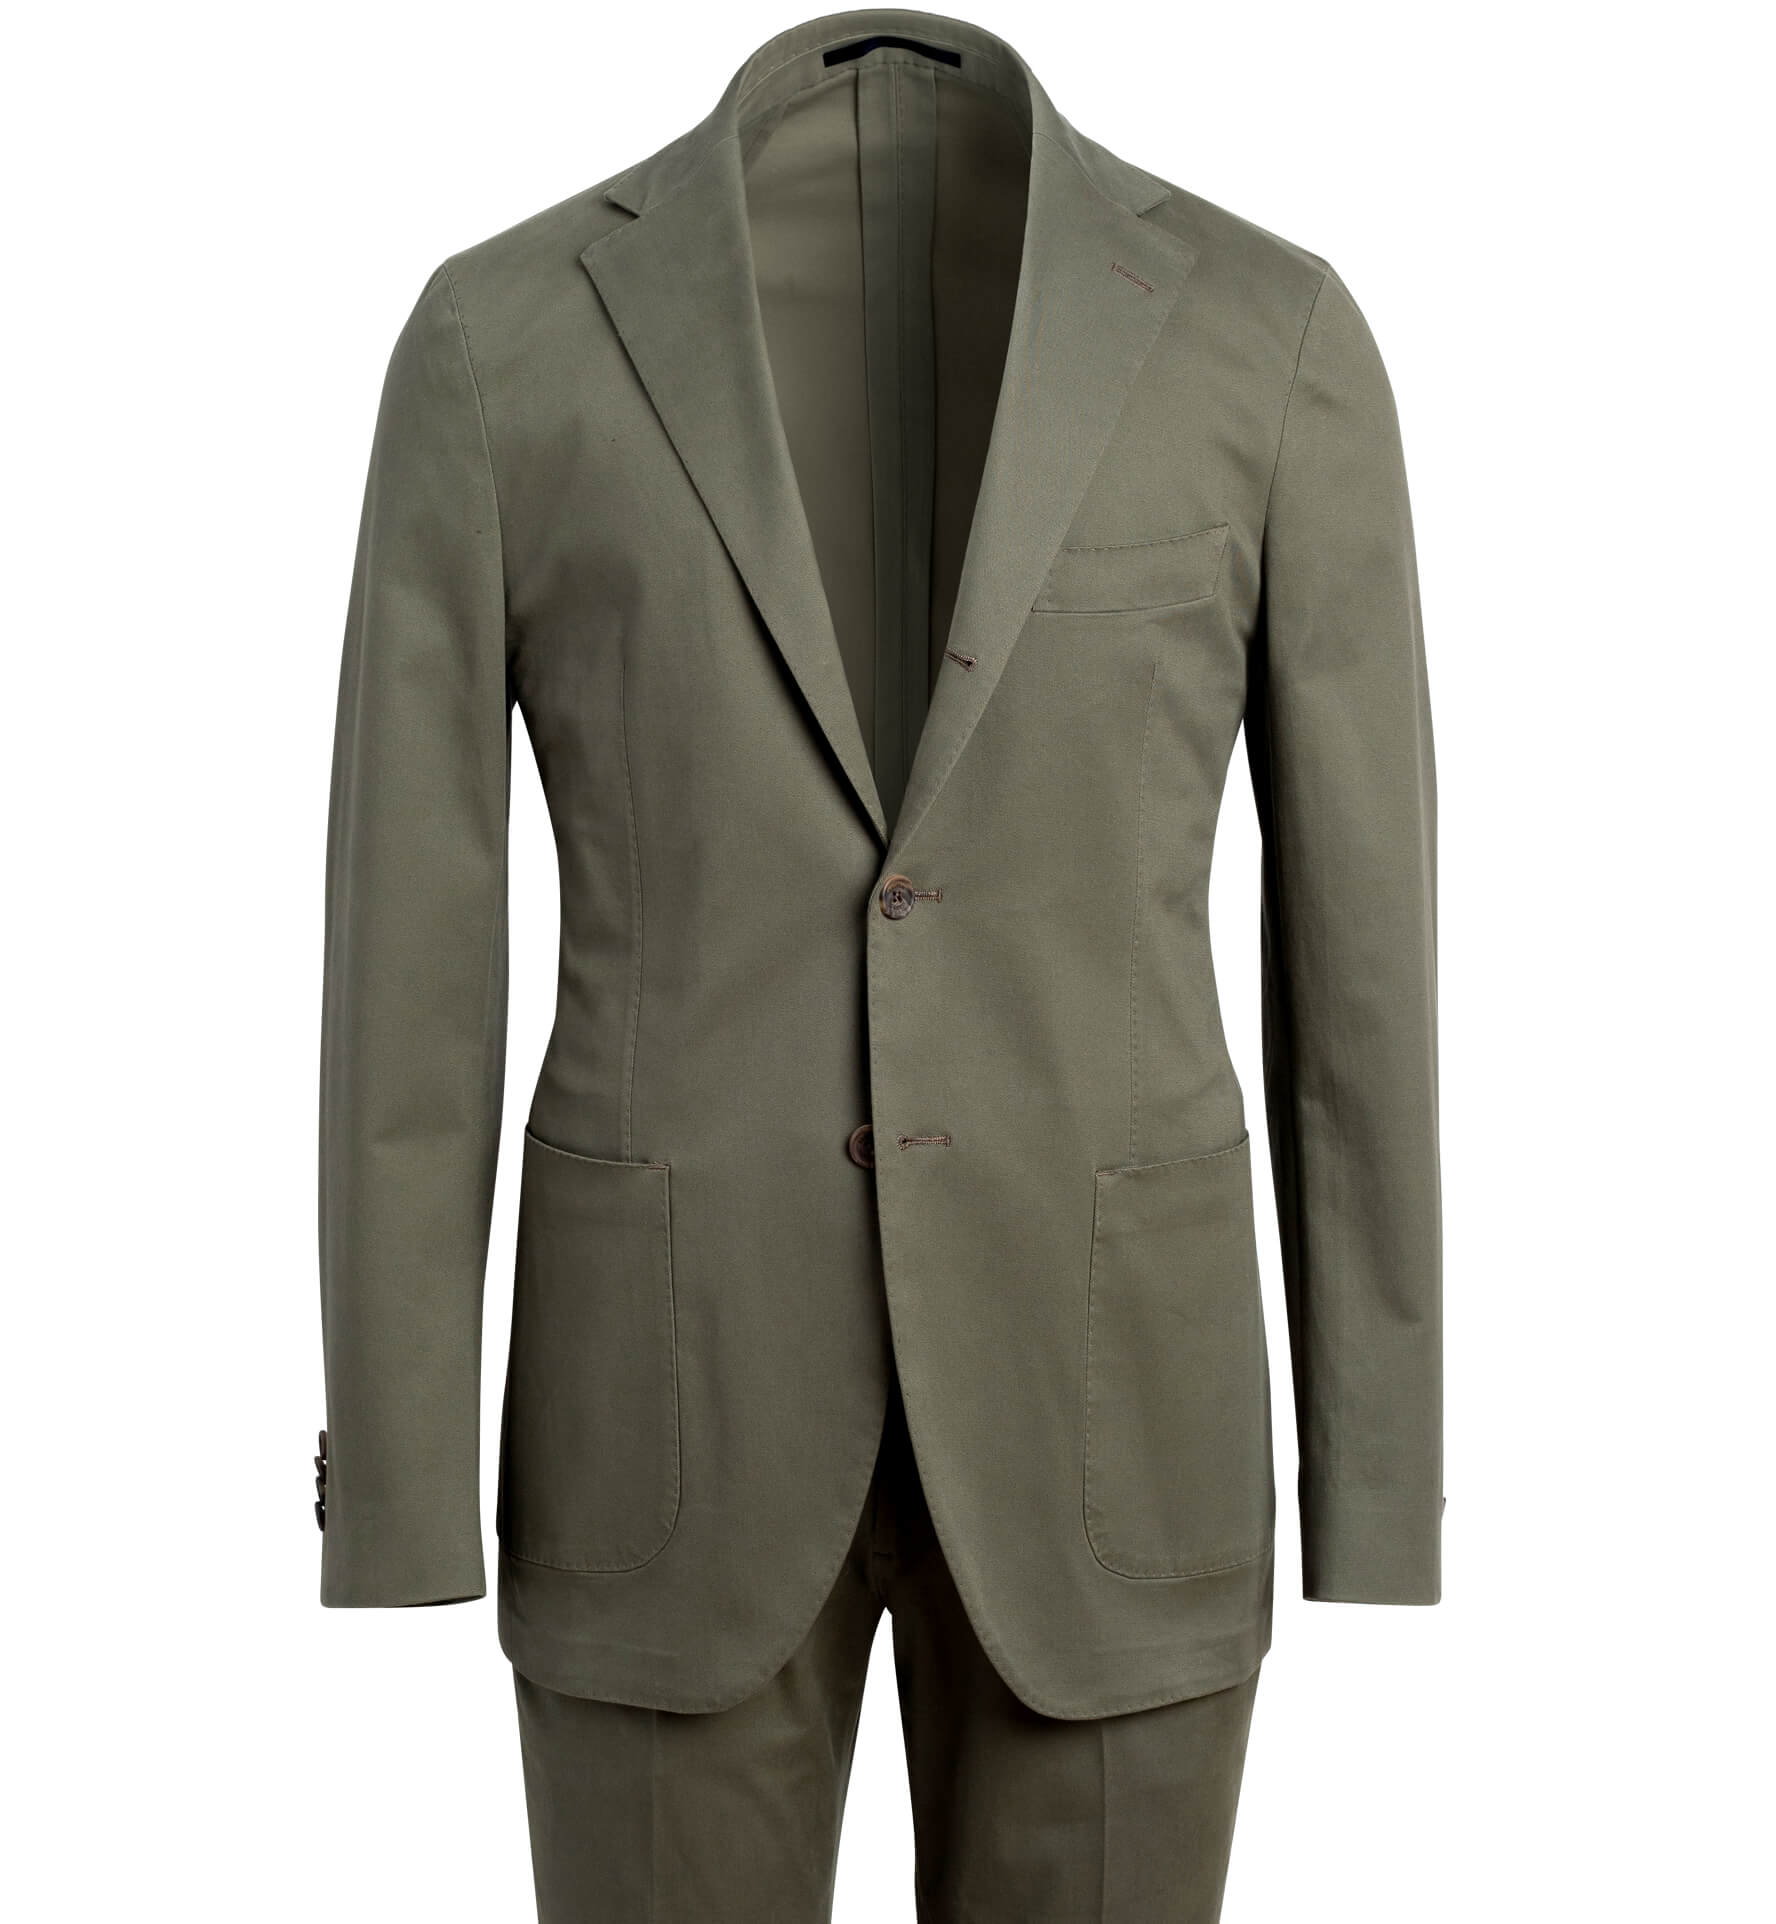 Zoom Image of Waverly Fatigue Stretch Cotton Suit